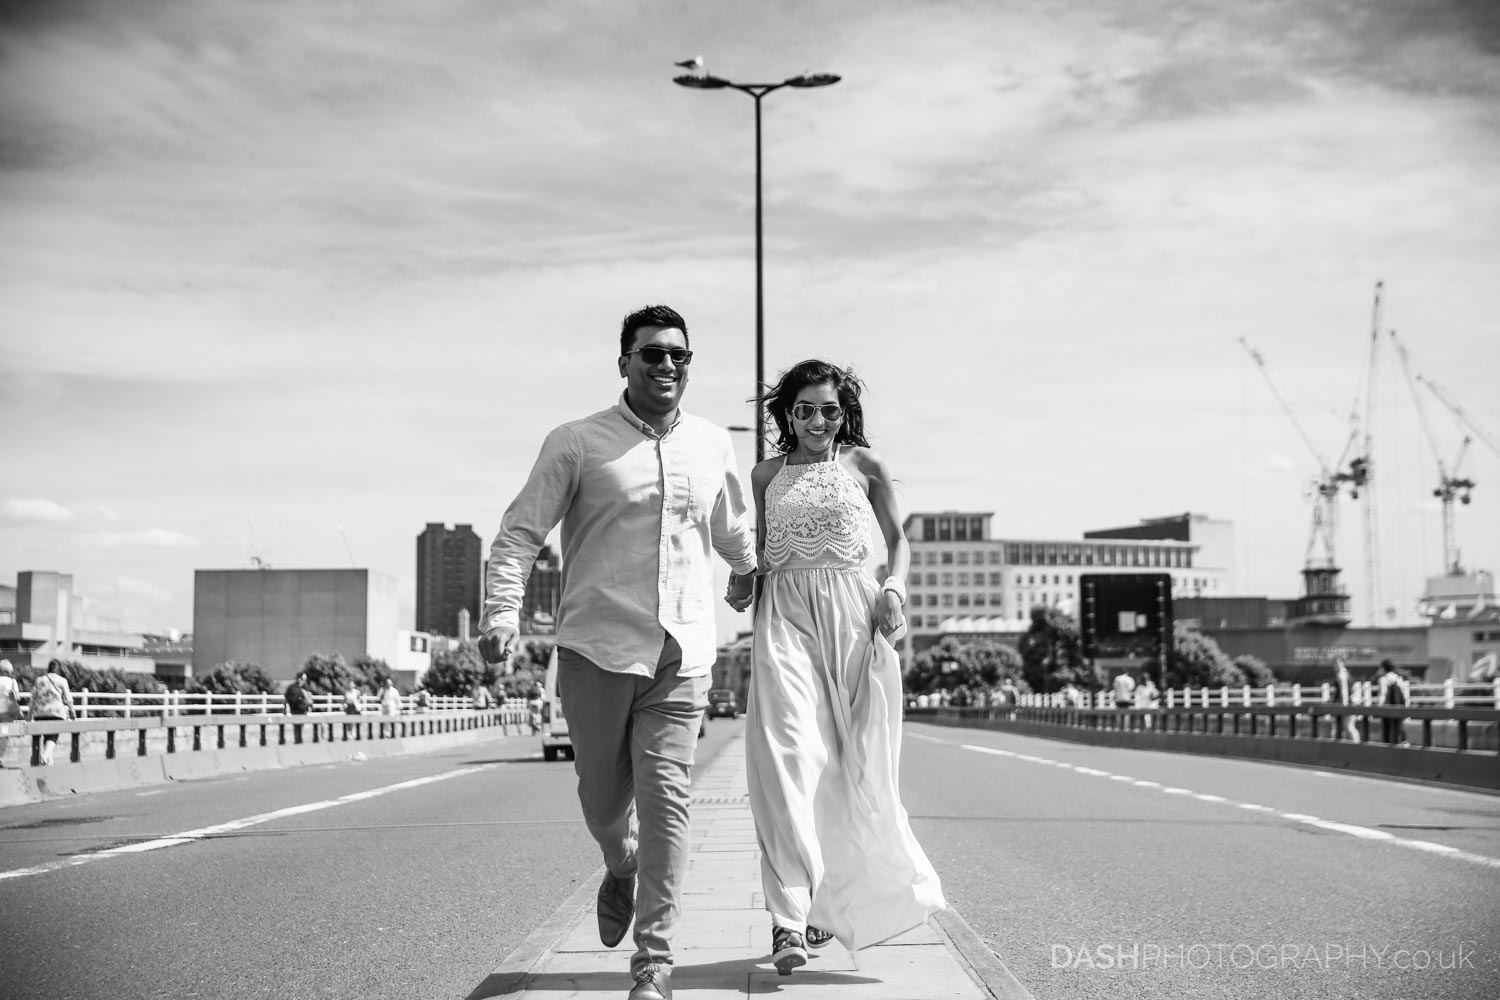 Dash Photography is an Asian wedding photography company based in London UK. Pre-Wed, 2017, engagement shoot, Hindu Wedding